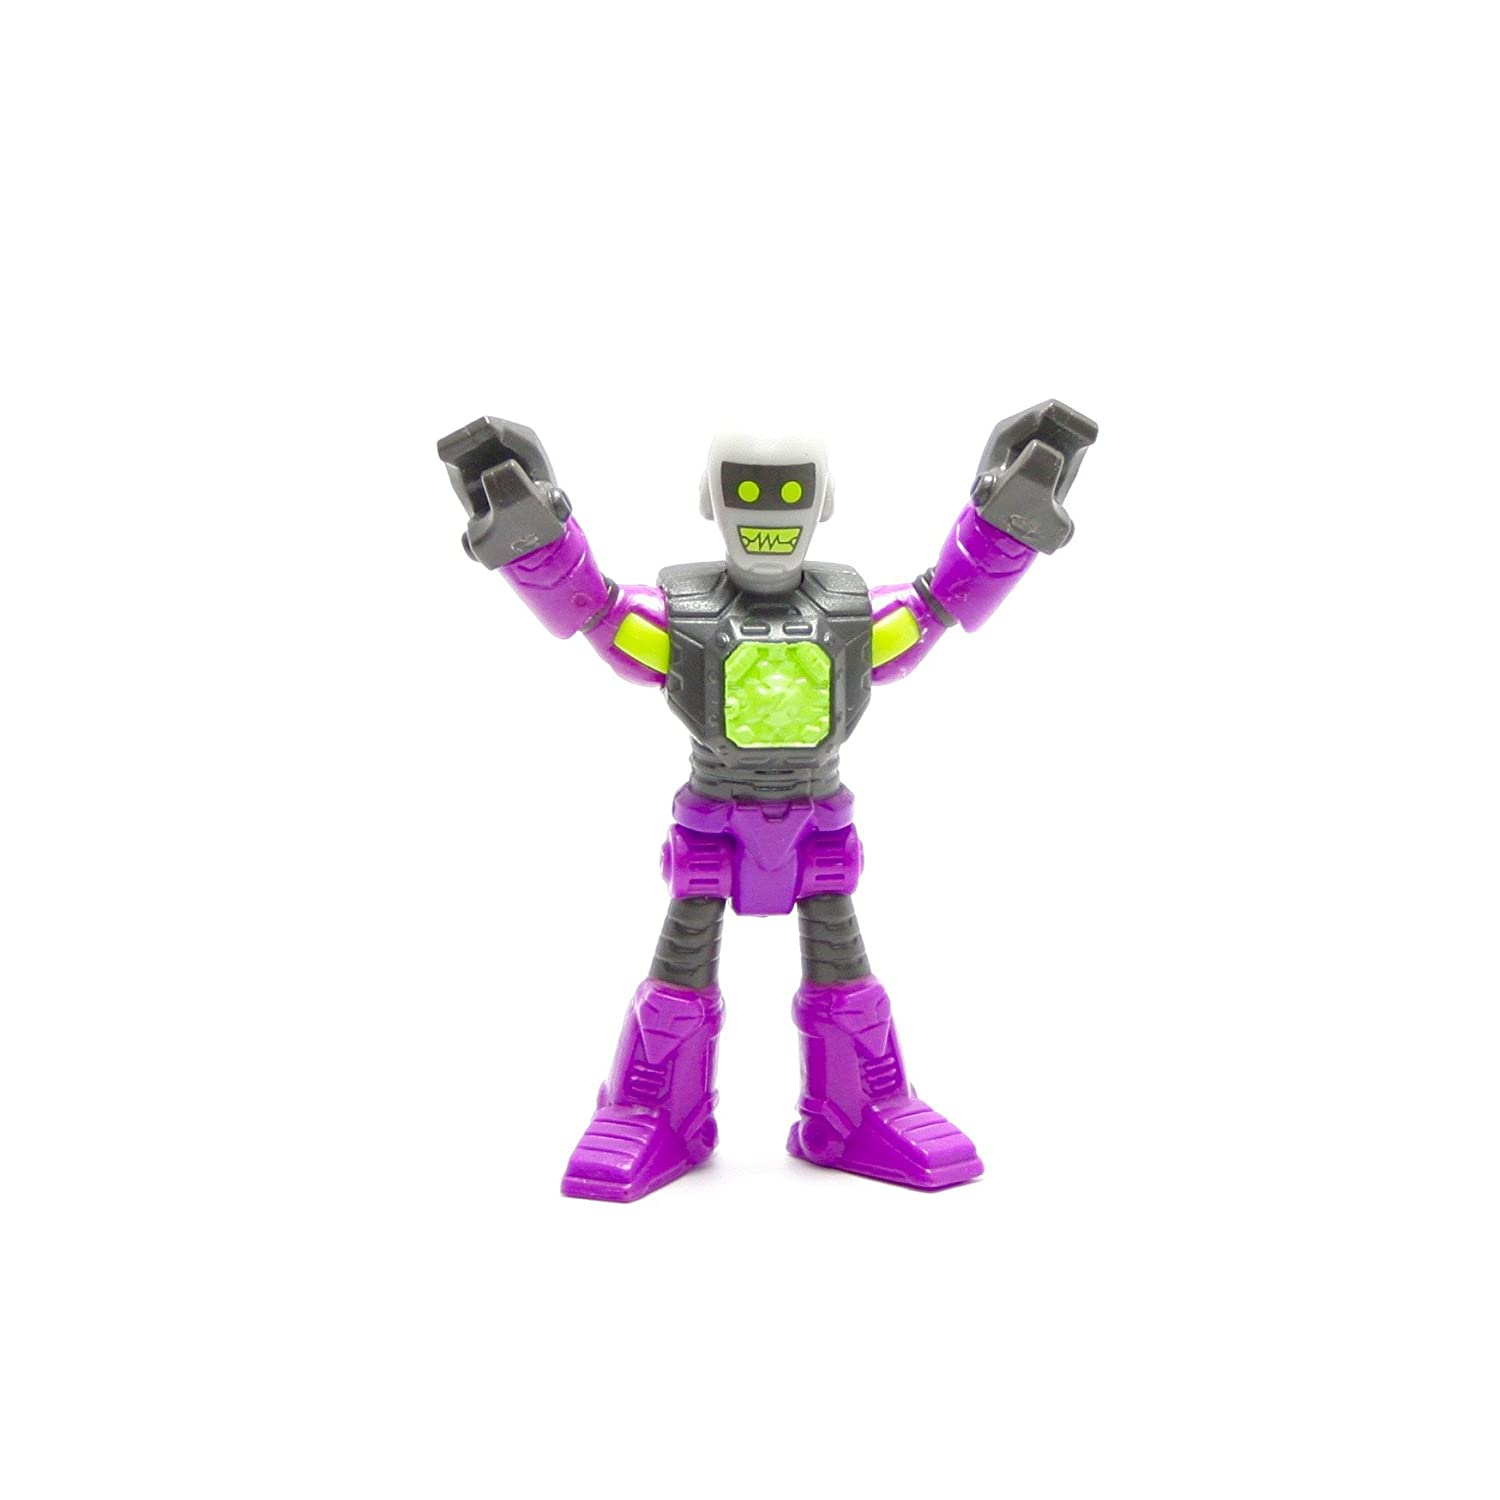 Space Robot with Rocket Surfboard Fisher Price SG/_B016K353BG/_US Fisher-Price Imaginext Collectible Figures Series 4